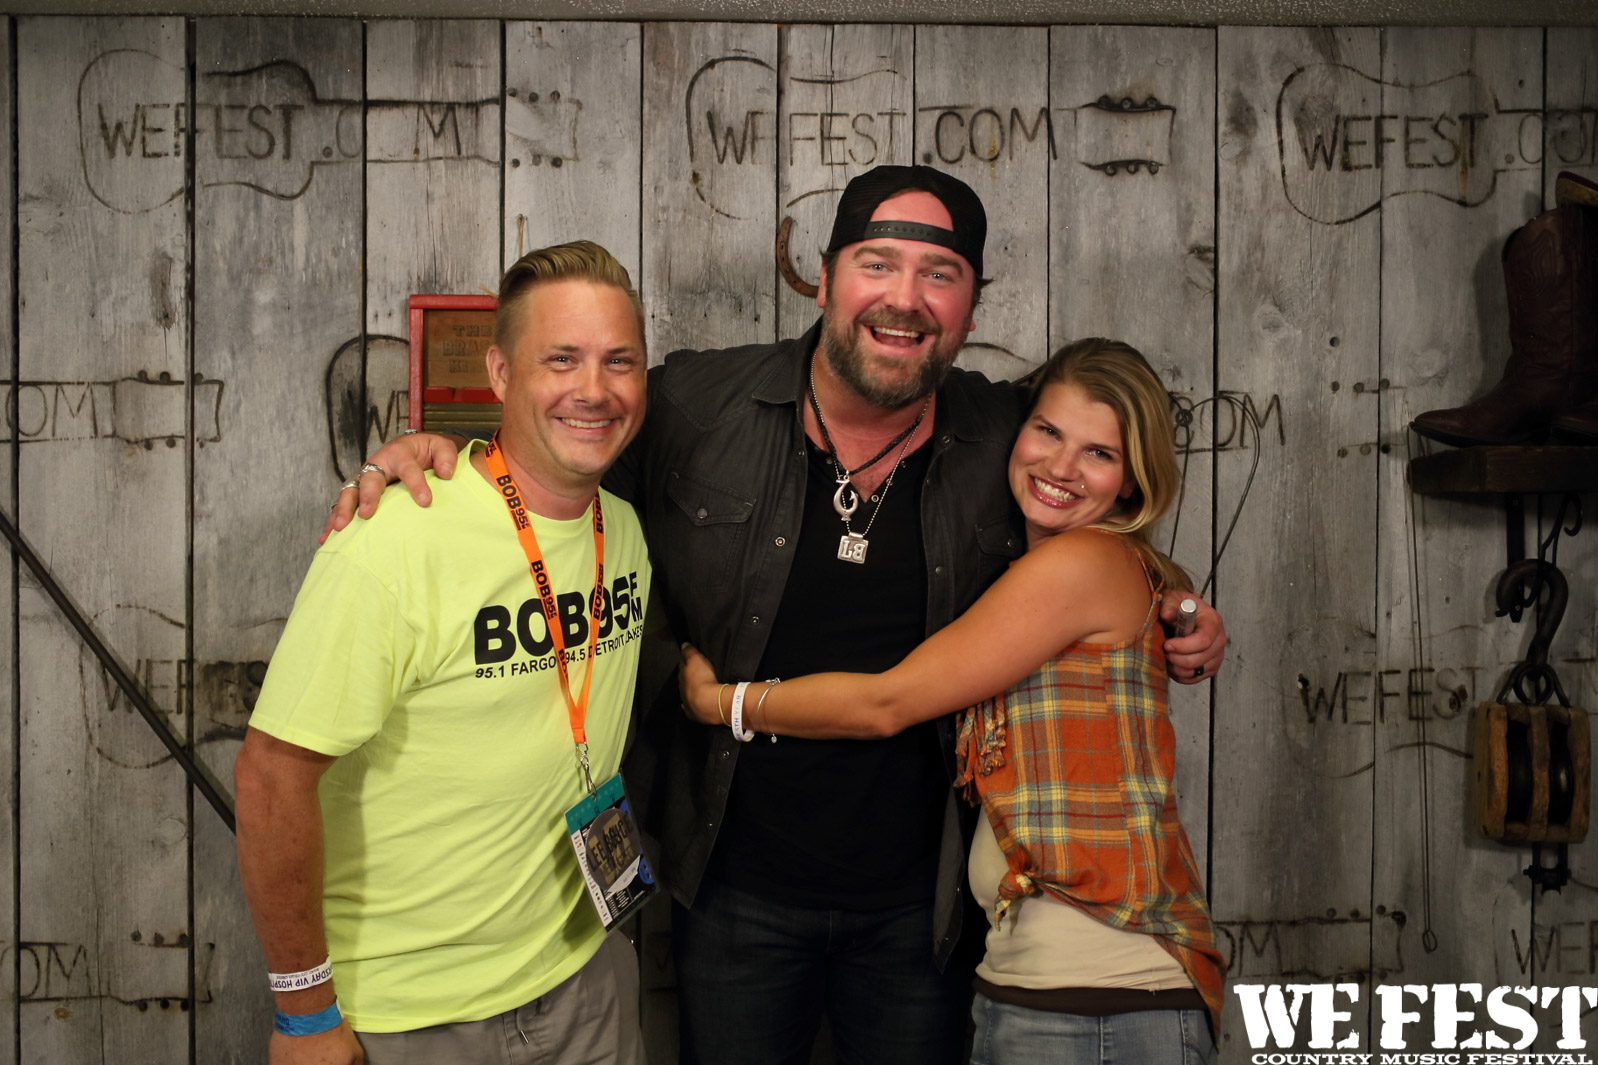 PHOTOS: Lee Brice Meet and Greet | WE Fest